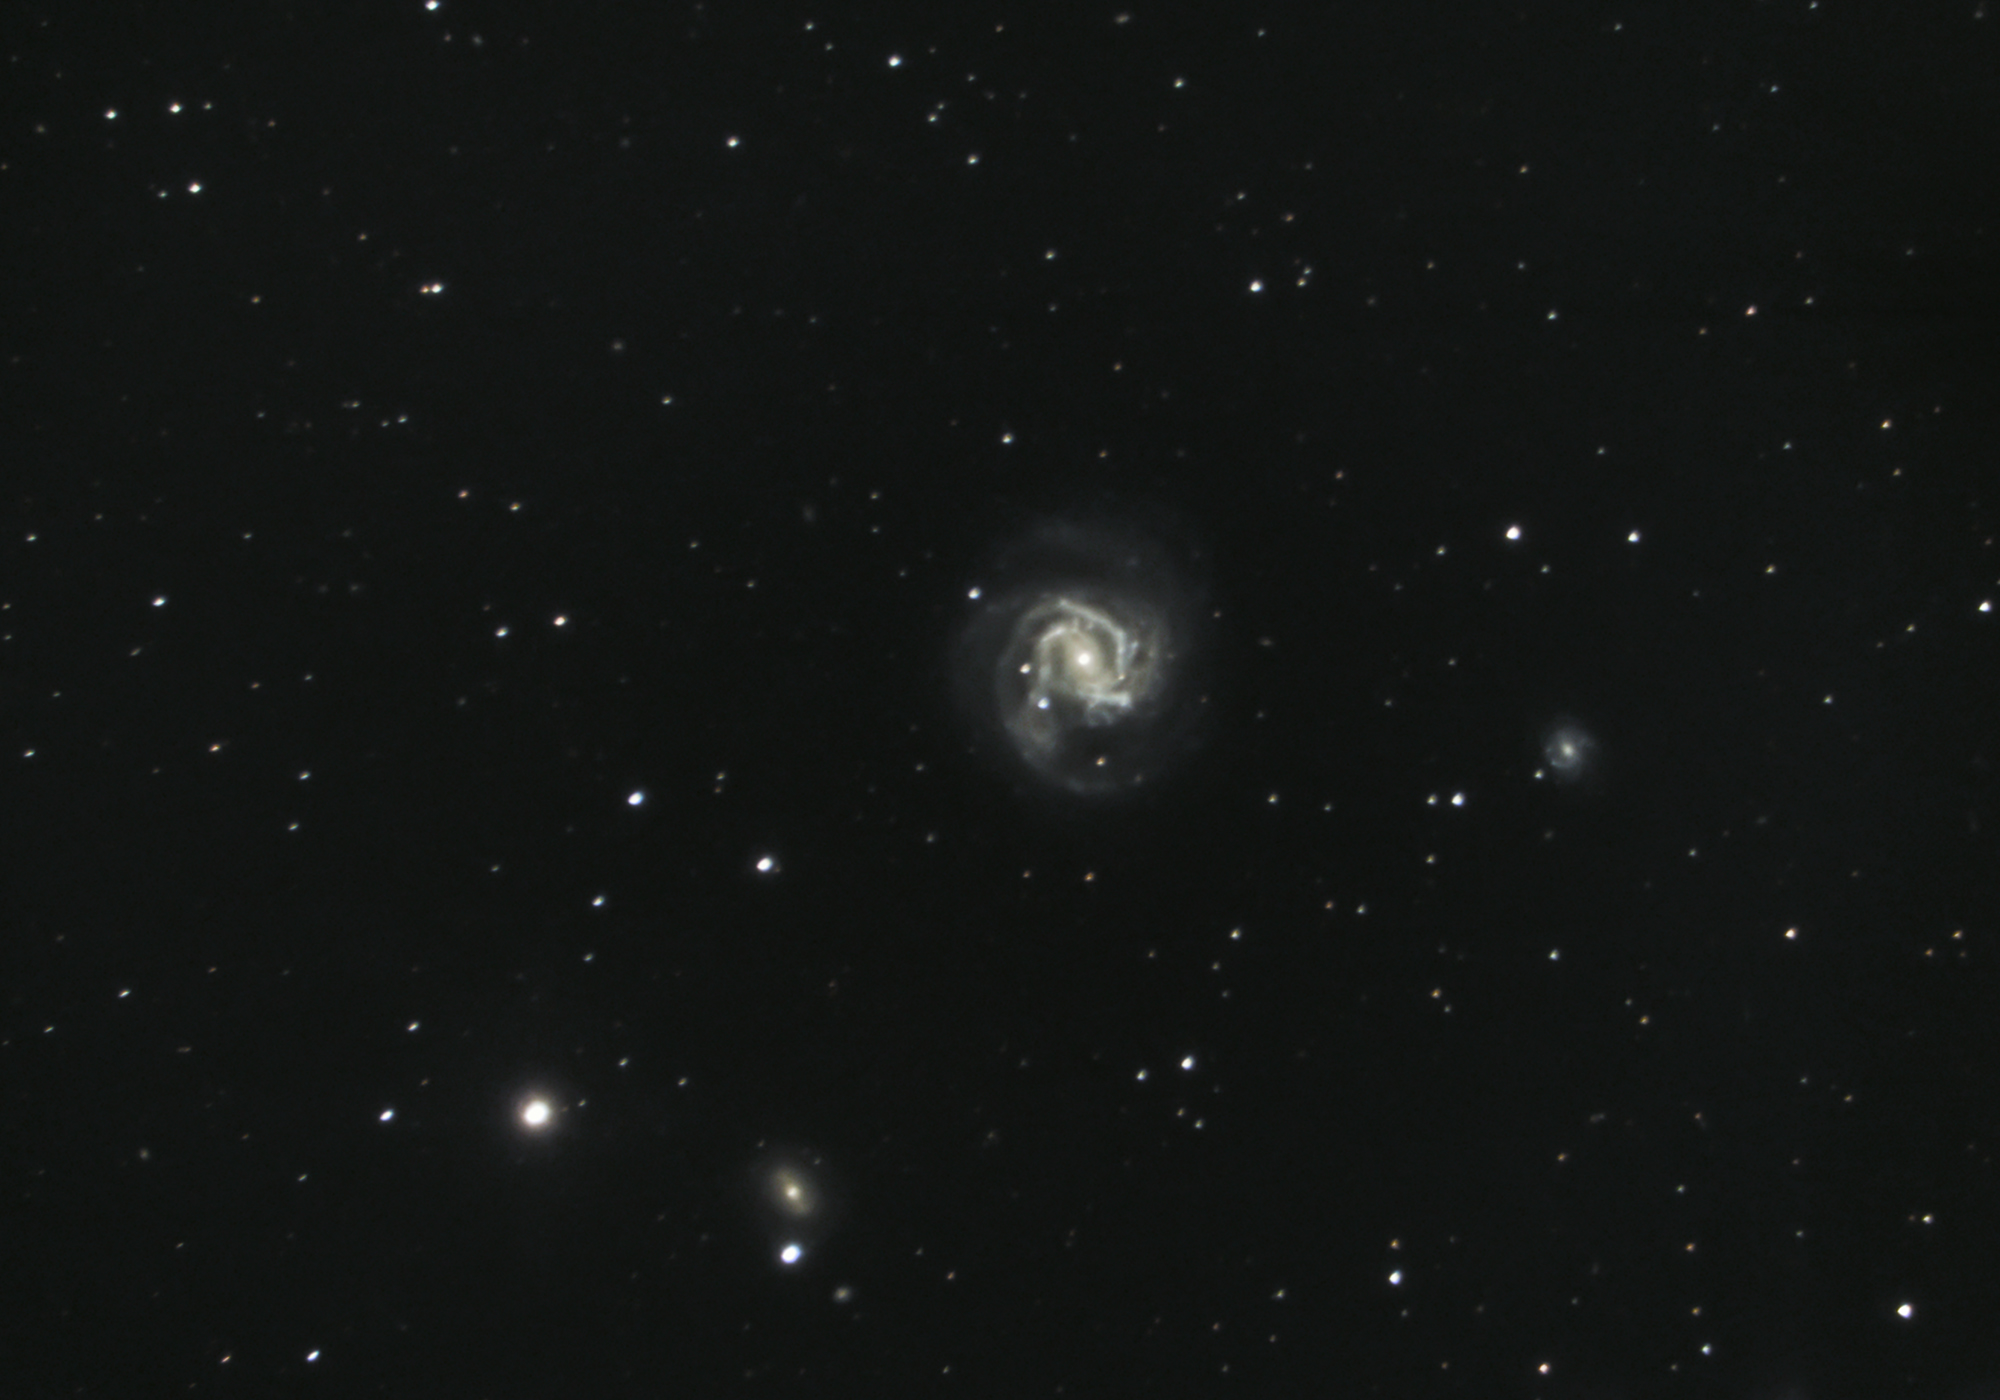 Supernova SN2020jfo in Galaxy M61